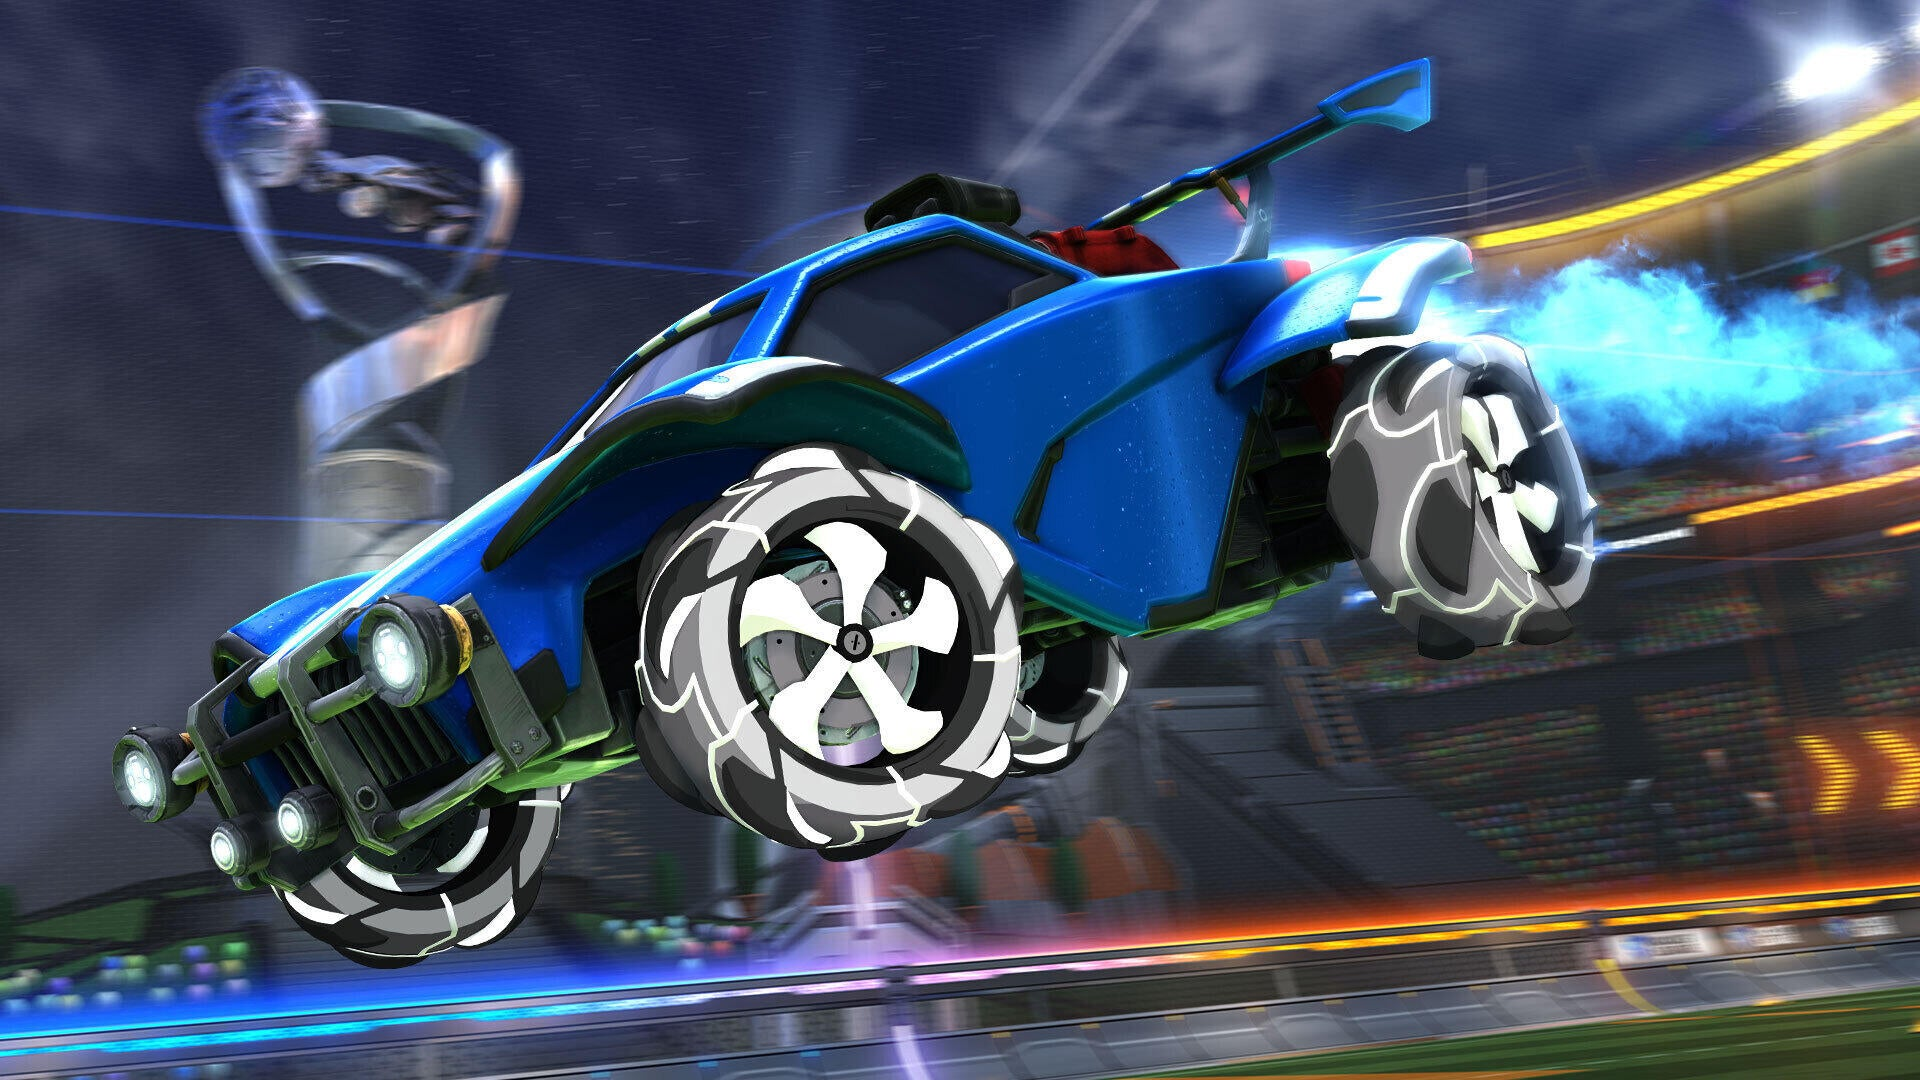 IMAGE(https://rocketleague.media.zestyio.com/rl_epic-link_wheel.309bf22bd29c2e411e9dd8eb07575bb1.jpg)